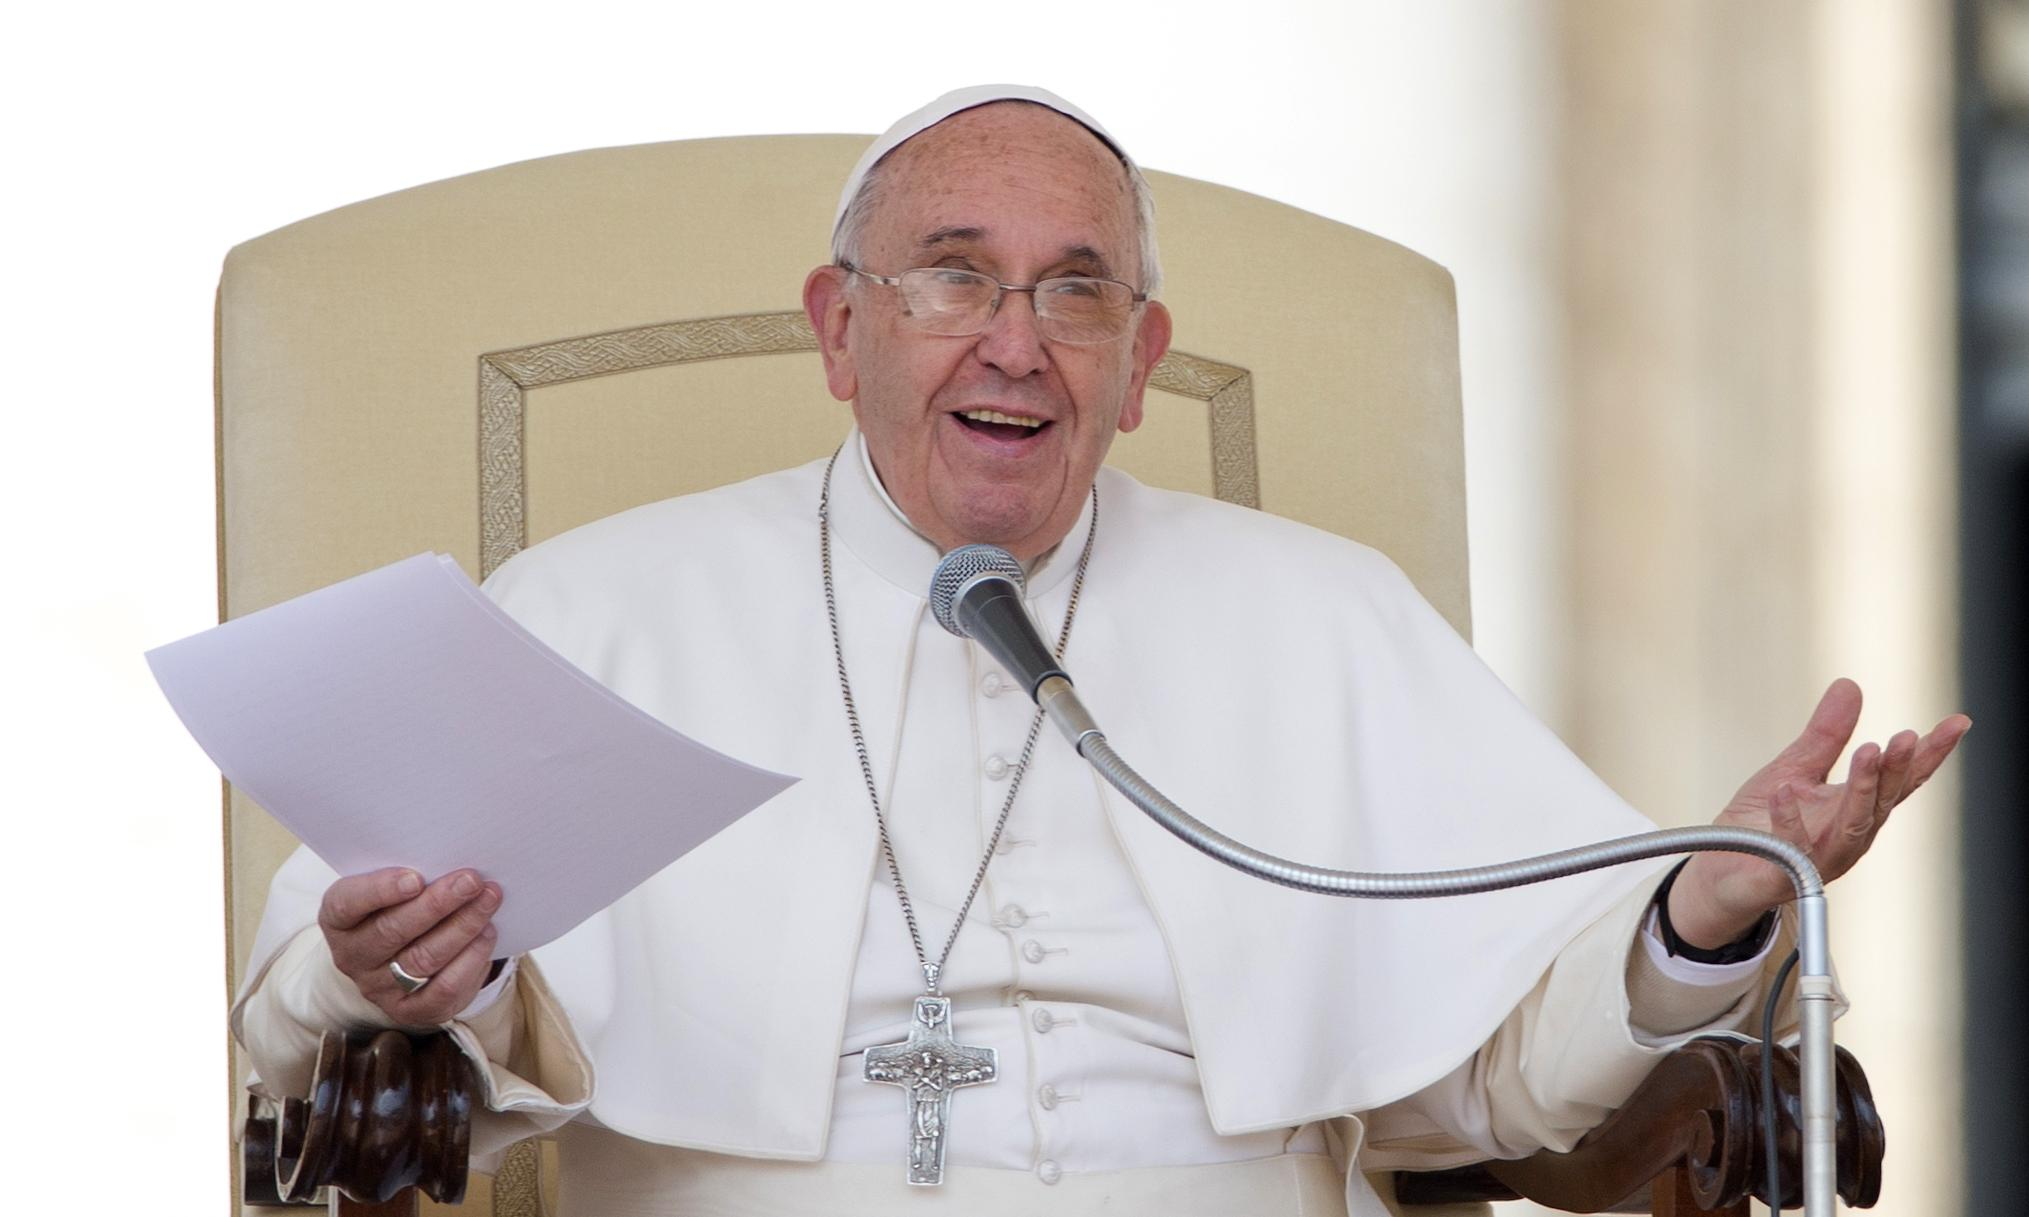 If the Pope wants women's equality, he must support reproductive rights